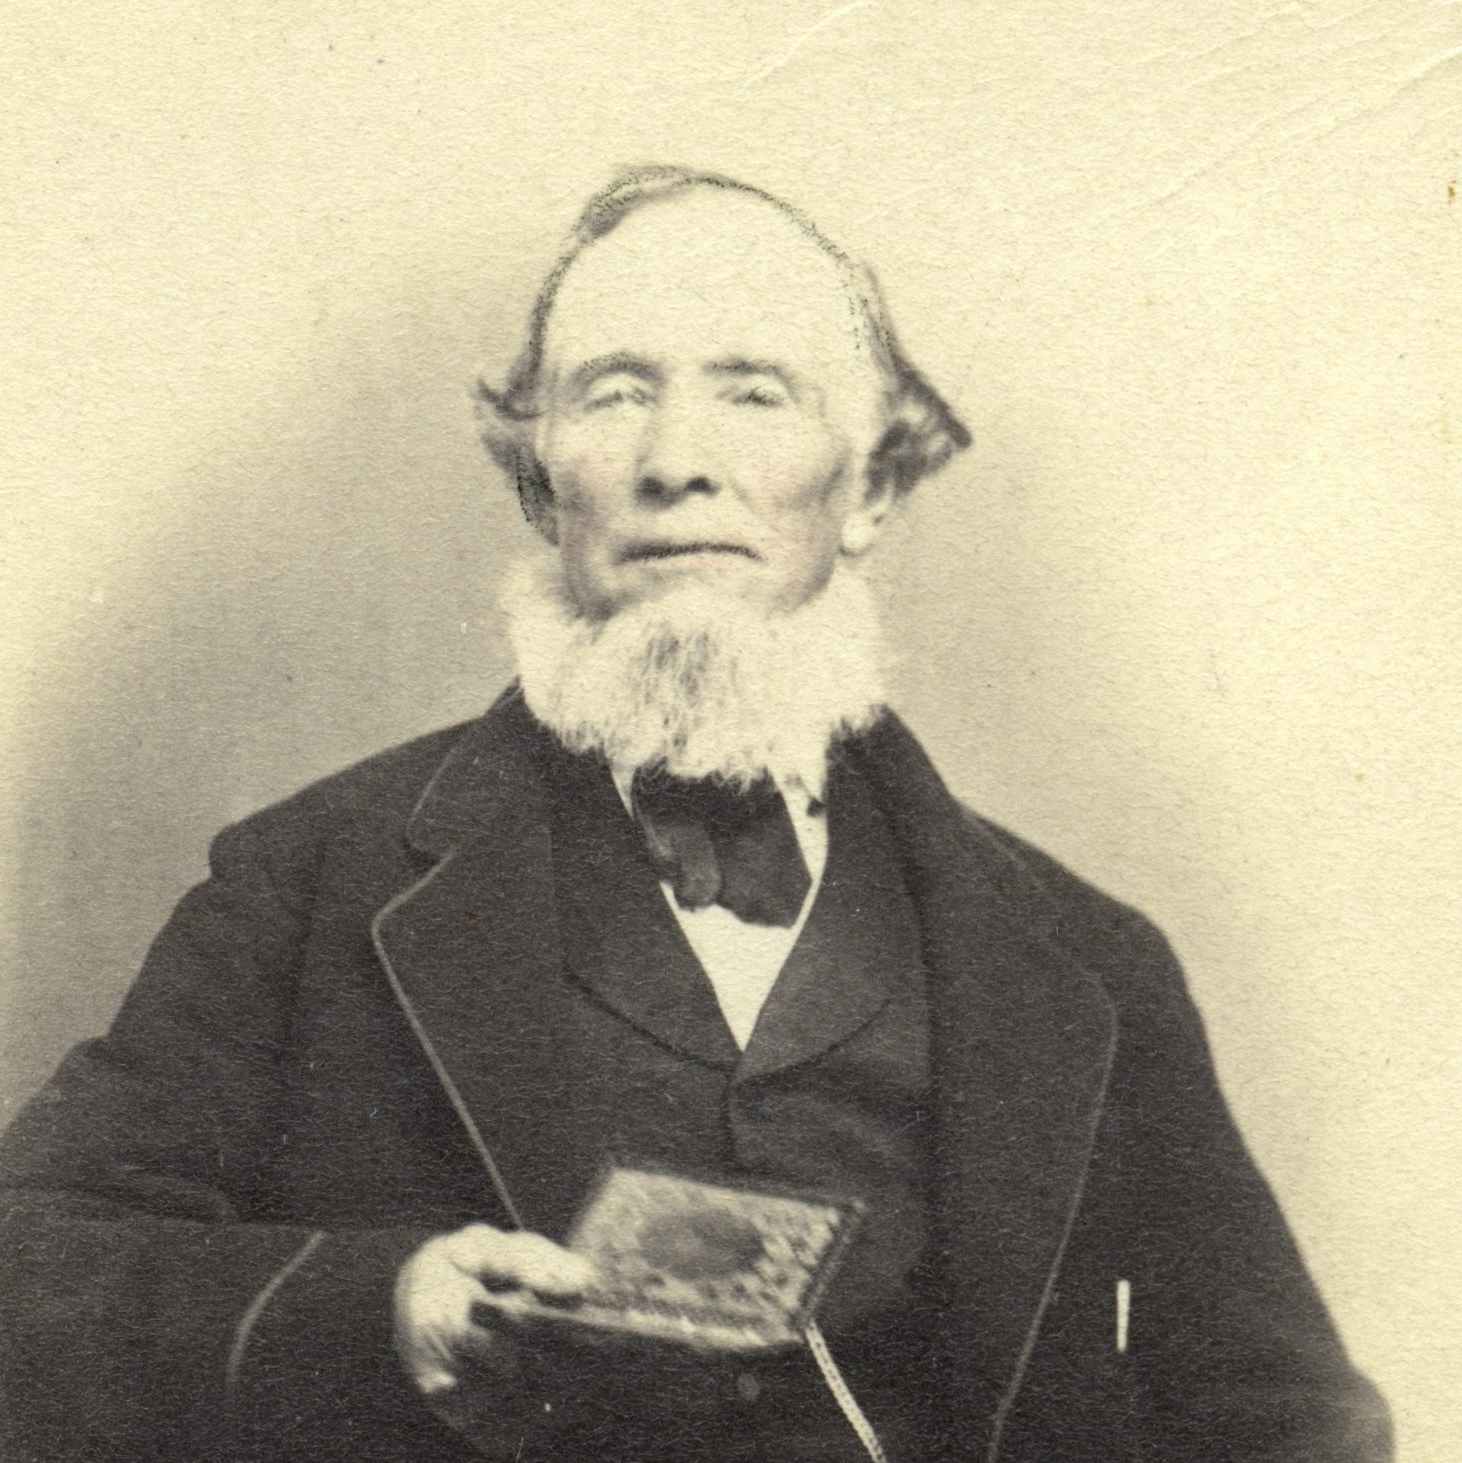 Morris Phelps in the 1870s